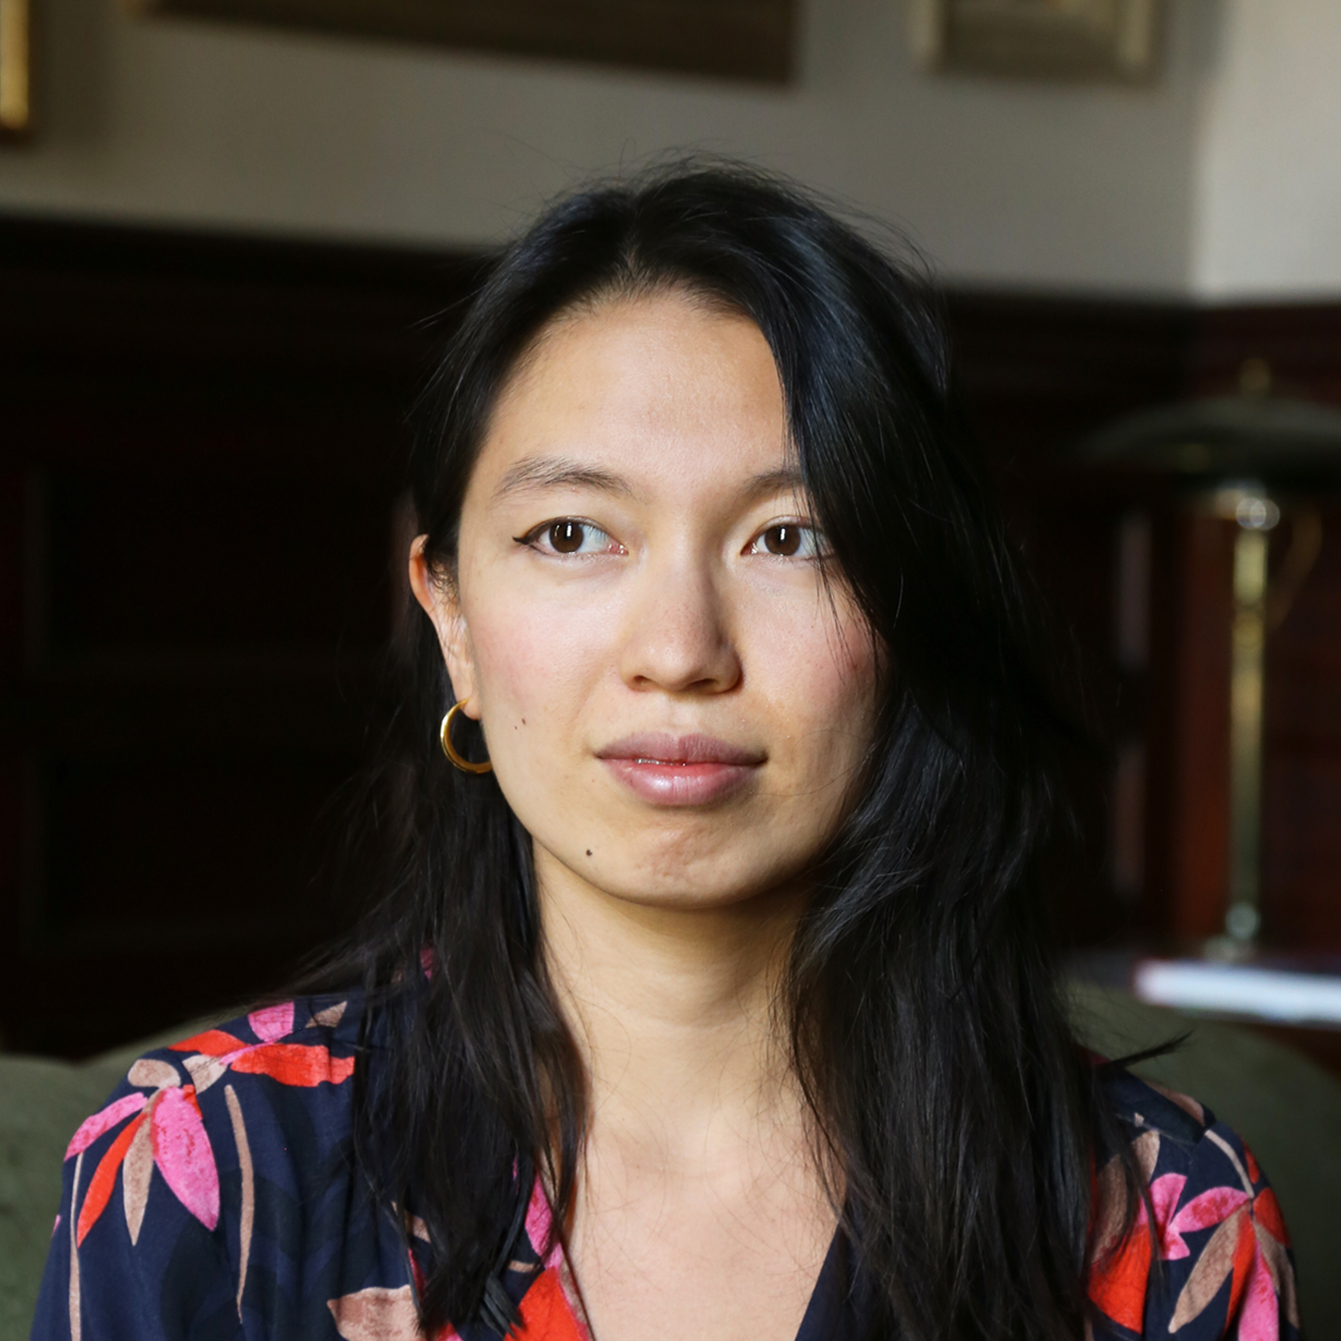 Evie-Cheung-Design-Mentor-We-the-Makers